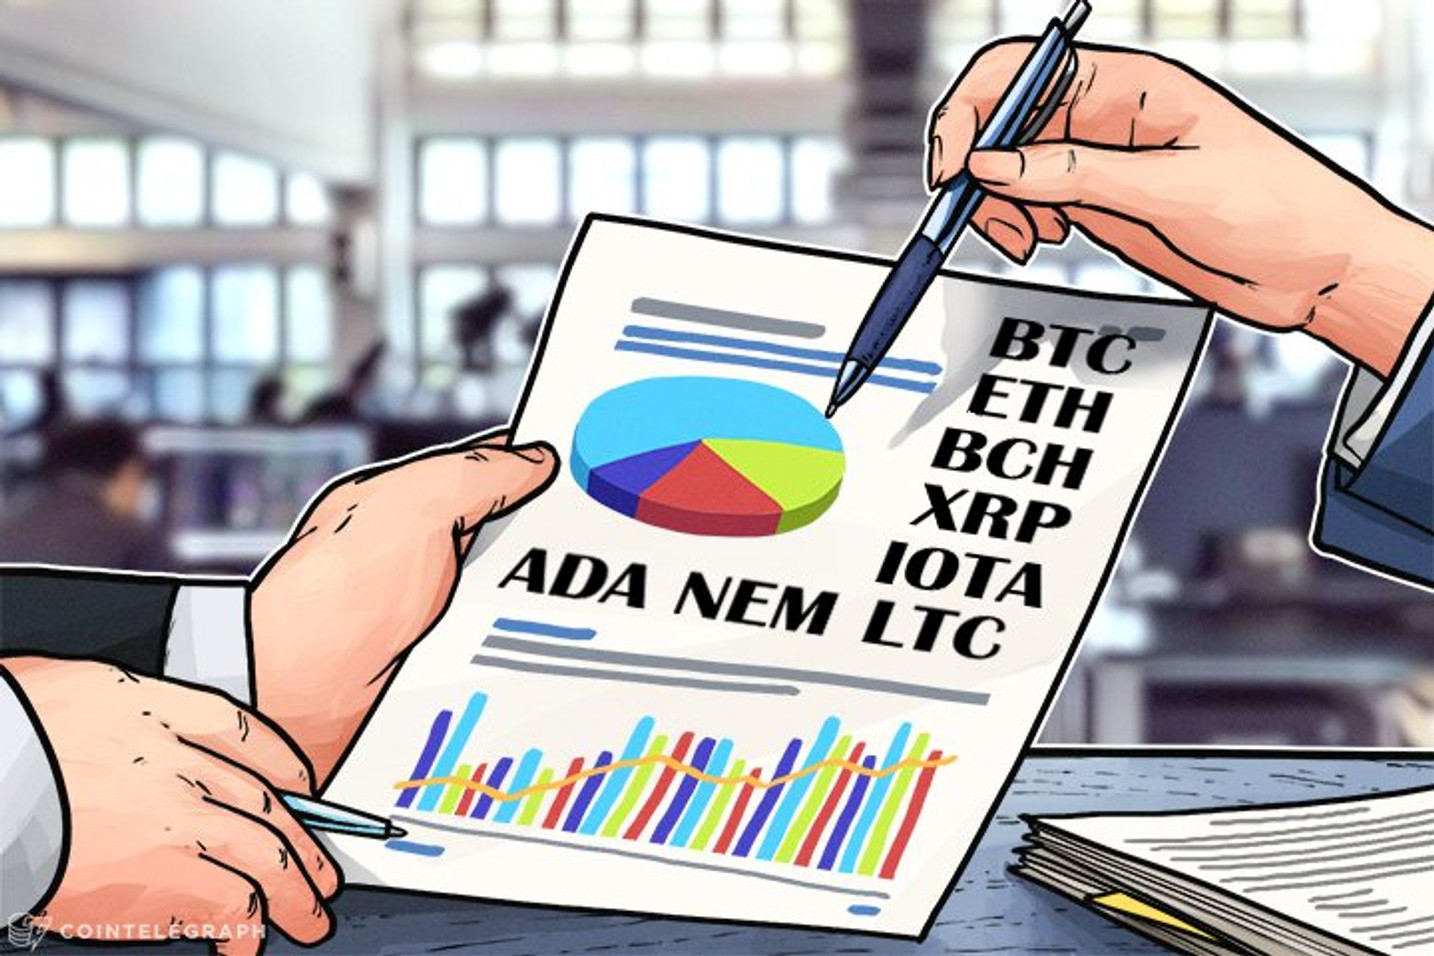 Price Analysis, Jan.10: Bitcoin, Ethereum, Bitcoin Cash, Ripple, IOTA, Litecoin, NEM, Cardano